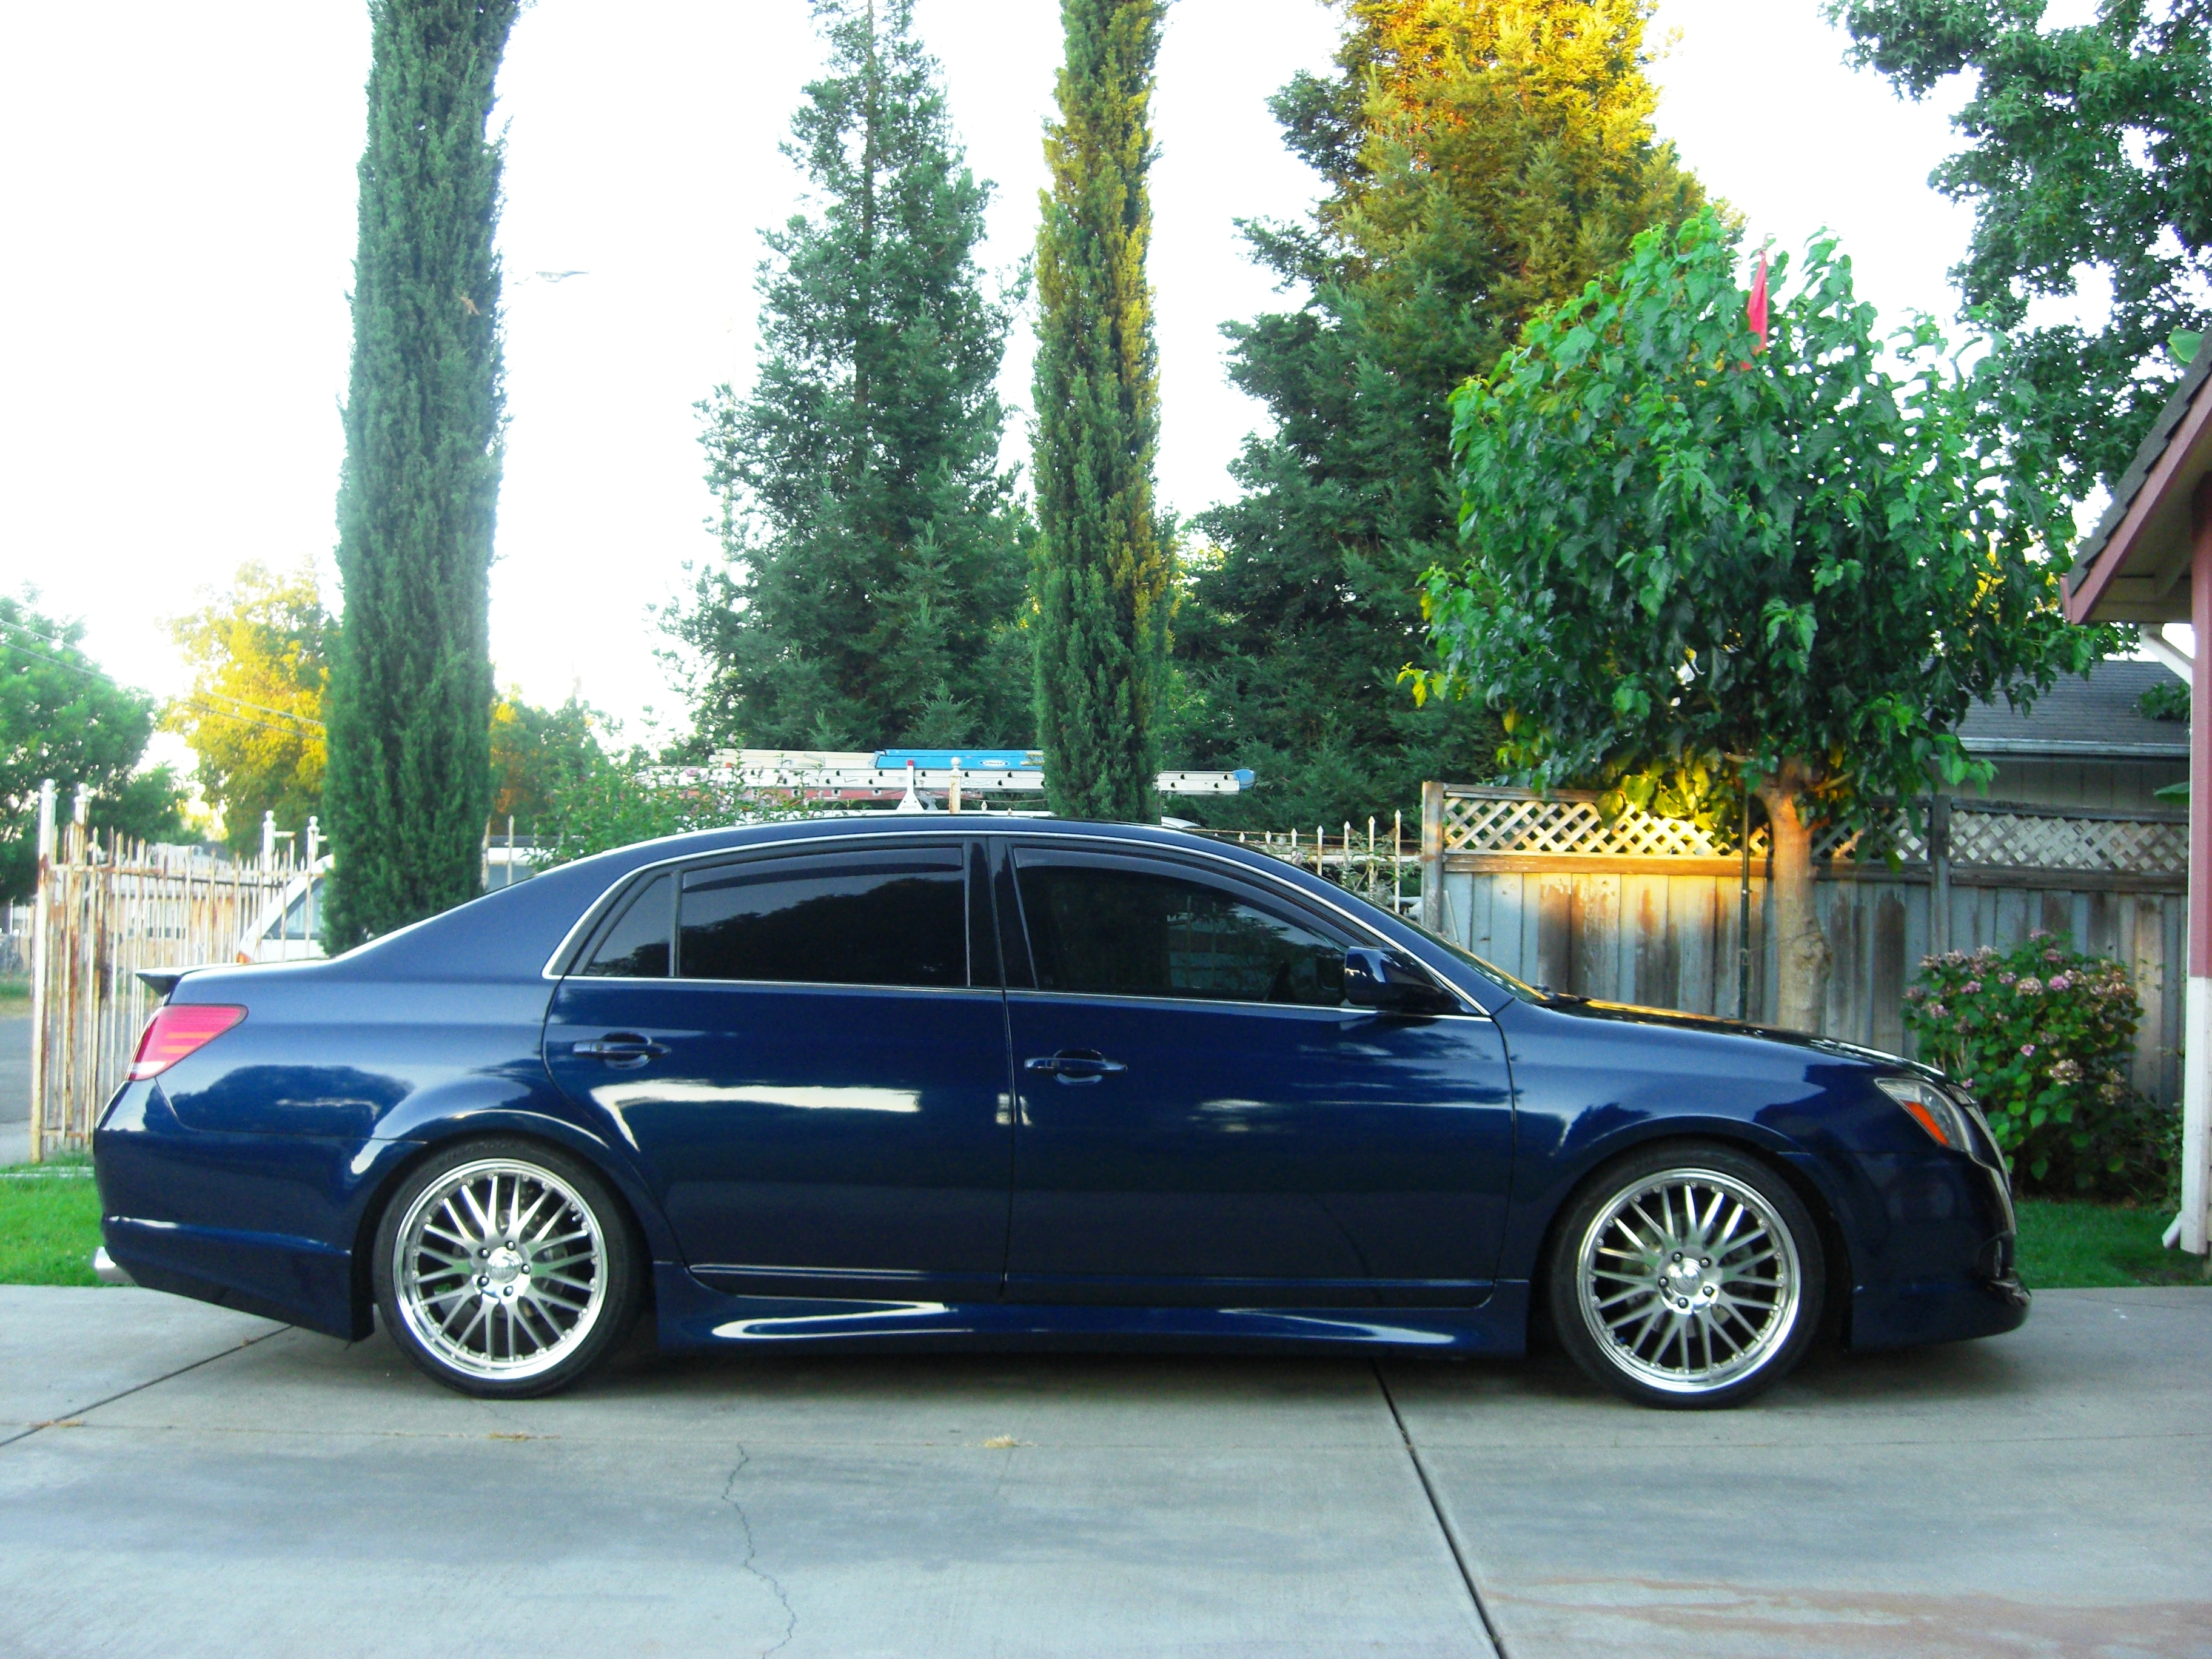 1sikavy 39 s 2005 toyota avalon in sacramento ca. Black Bedroom Furniture Sets. Home Design Ideas